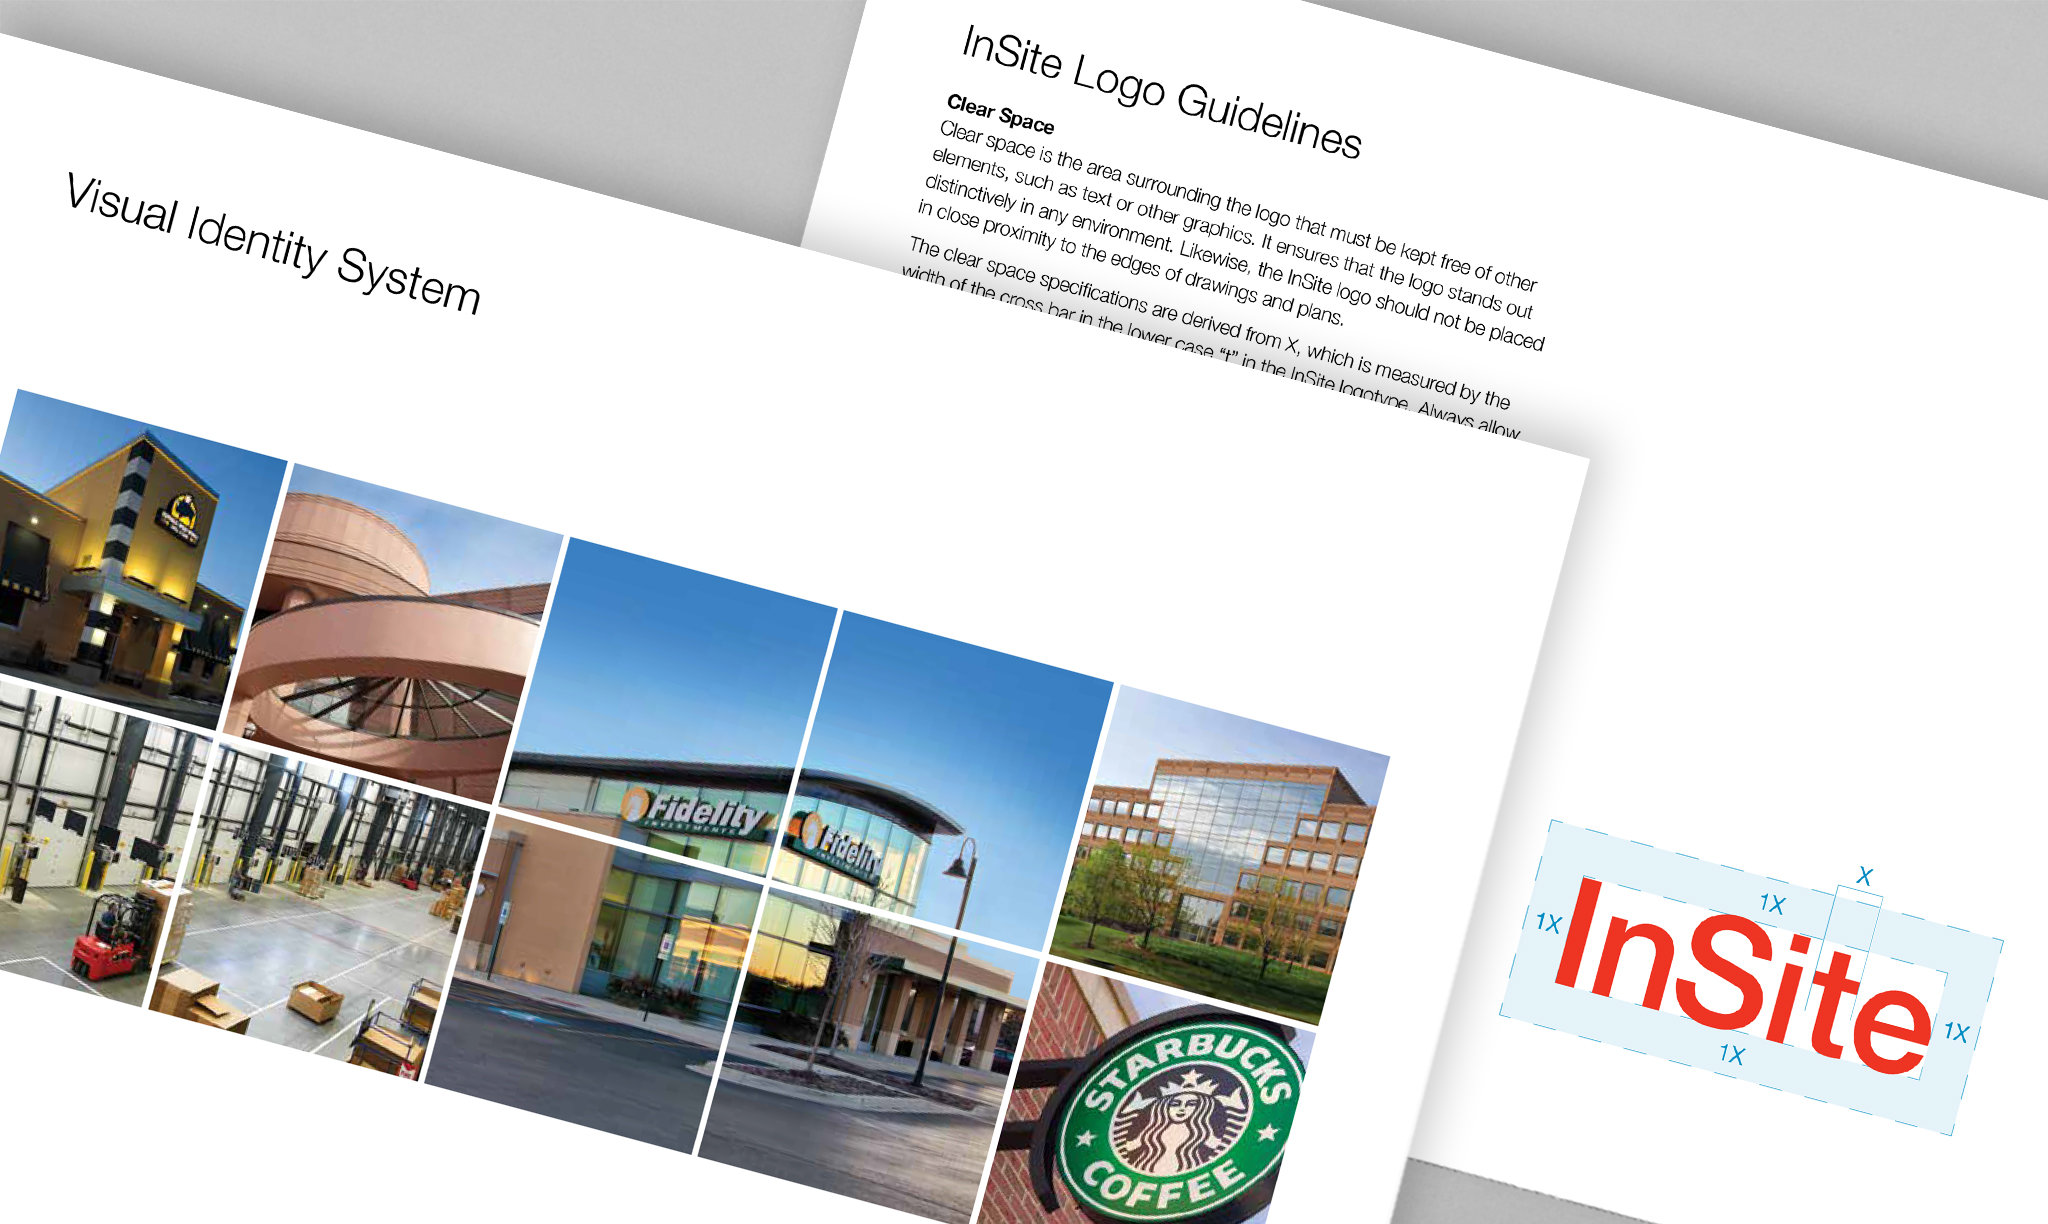 InSite Real Estate Visual Identity System